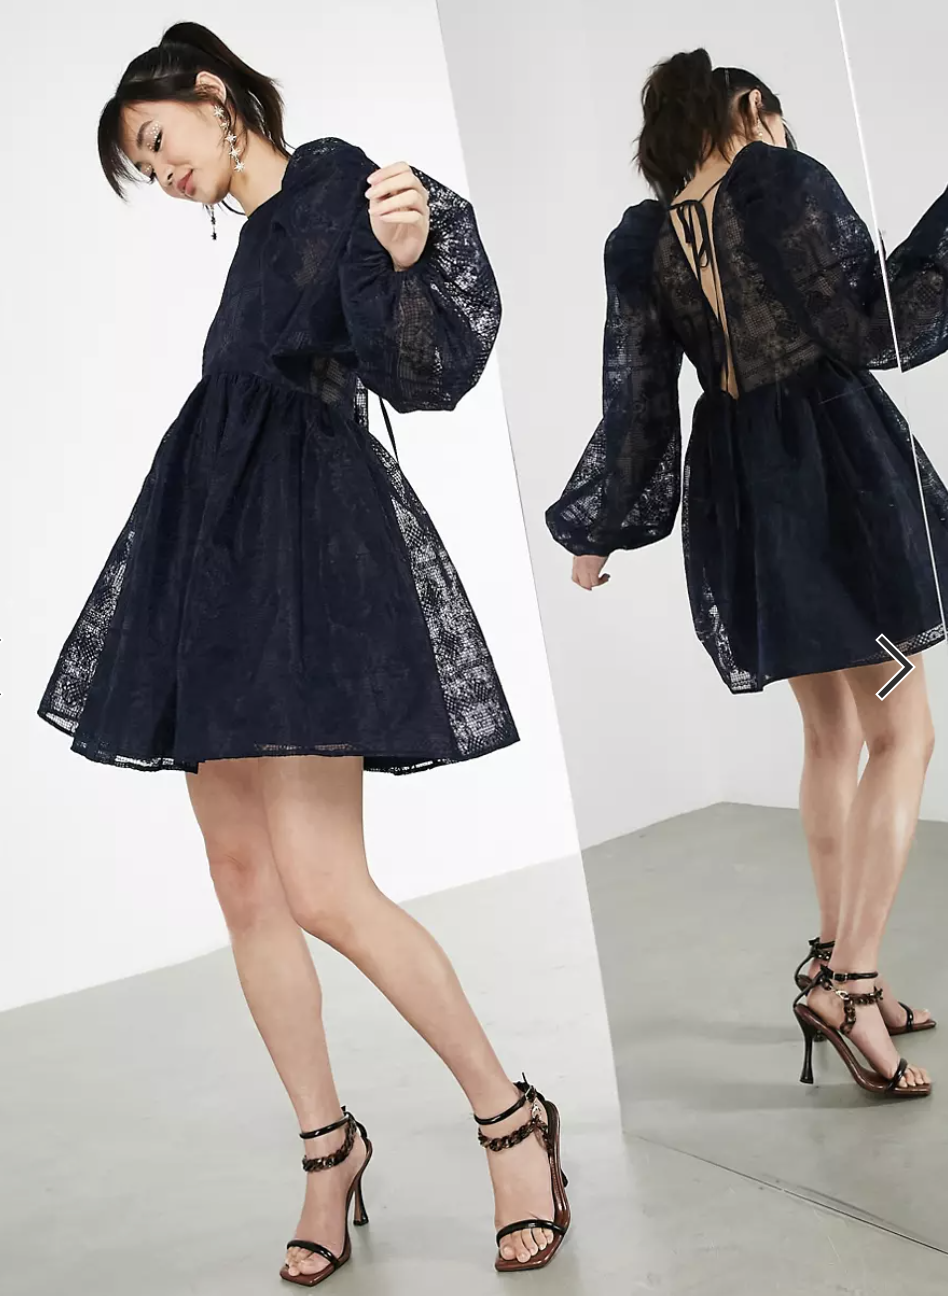 ASOS EDITION Embroidered Mini Smock Dress in Navy (Photo vis ASOS)